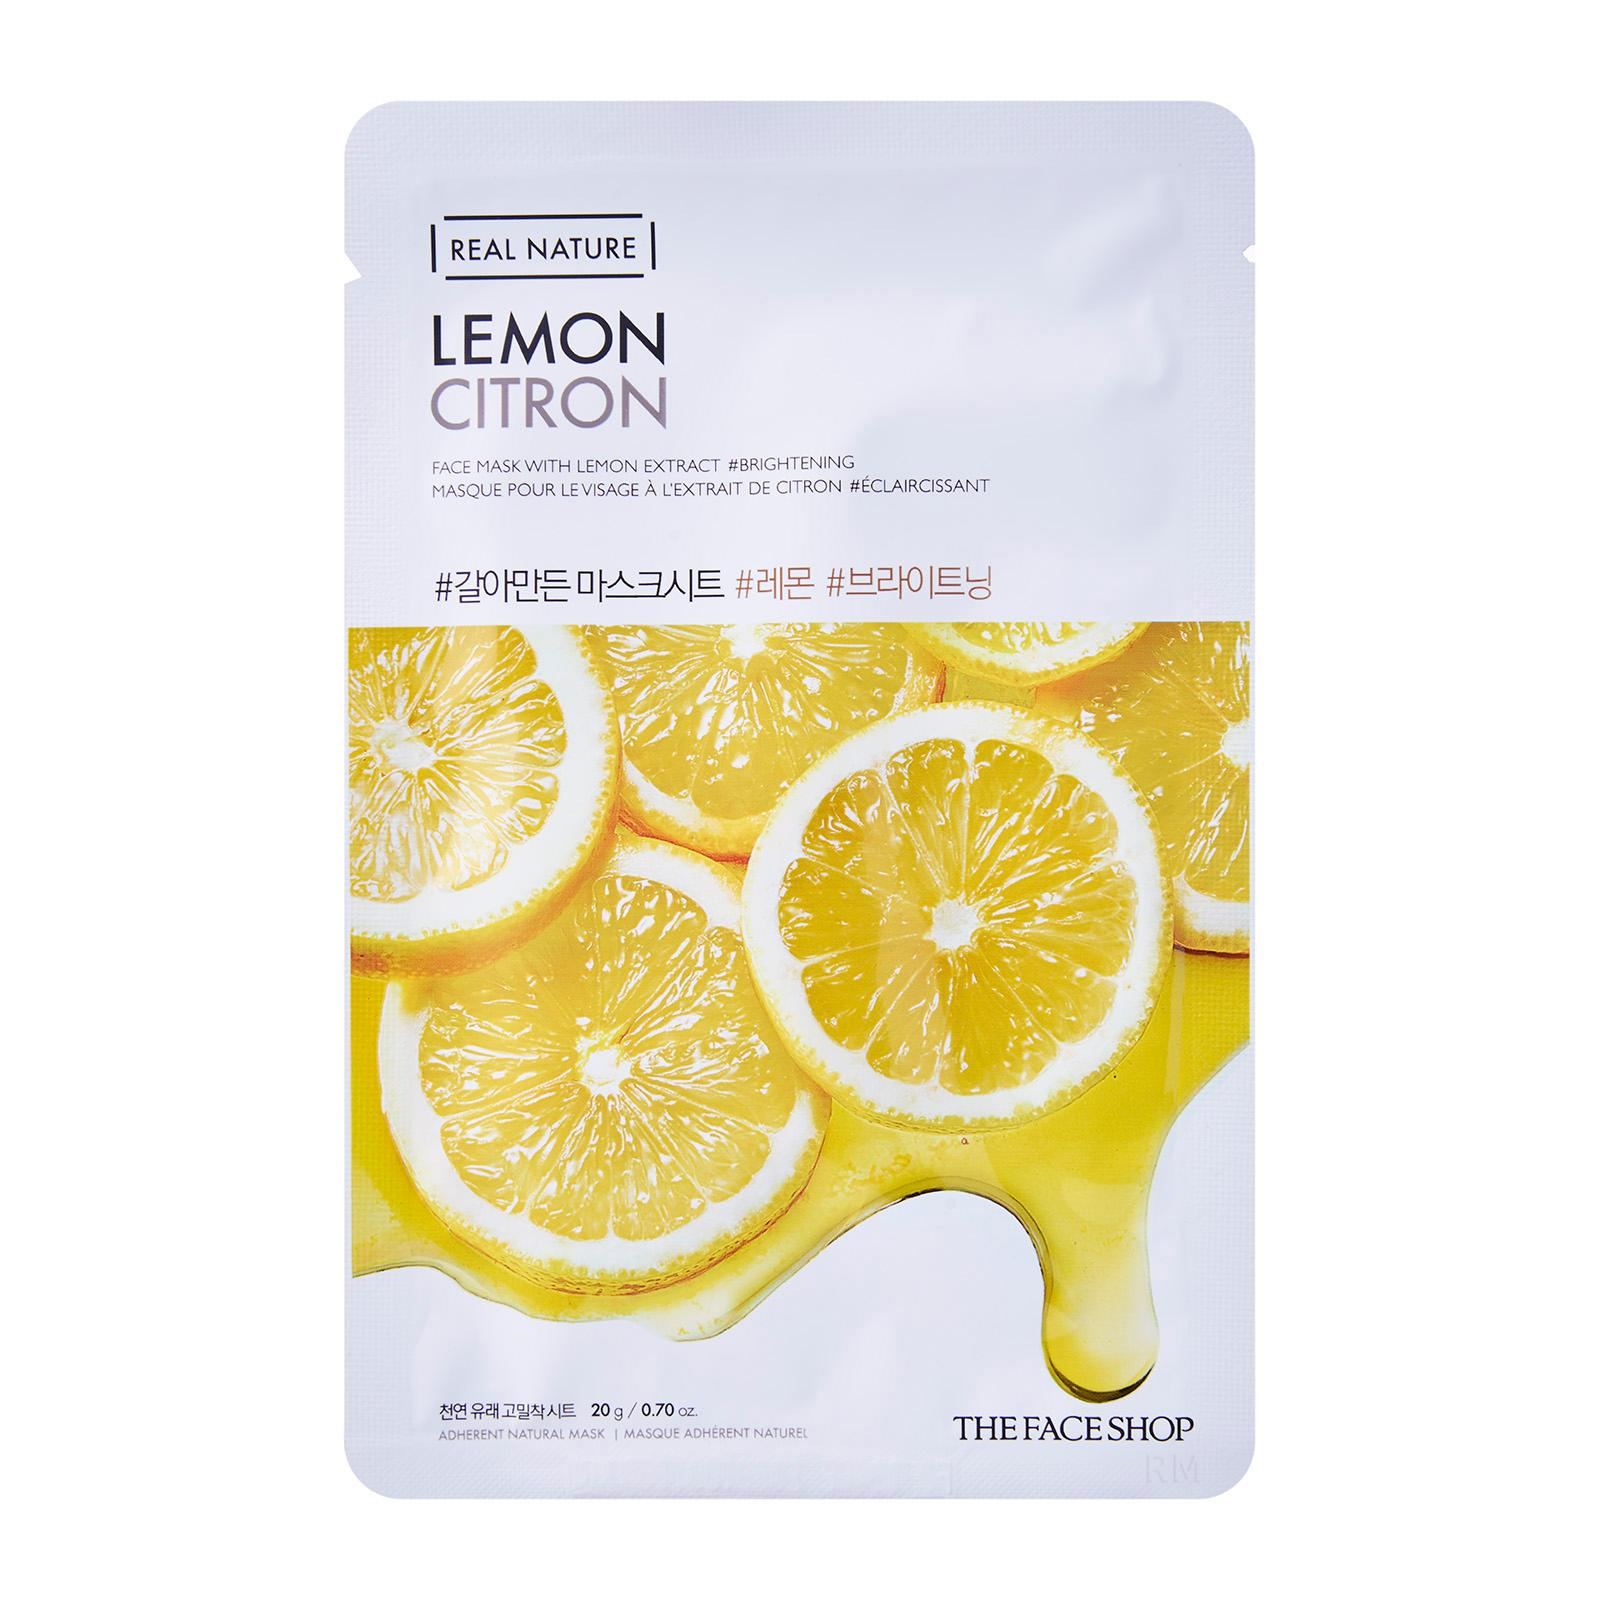 Top 10 real nature mask sheet from the face shop-Lemon Face Mask